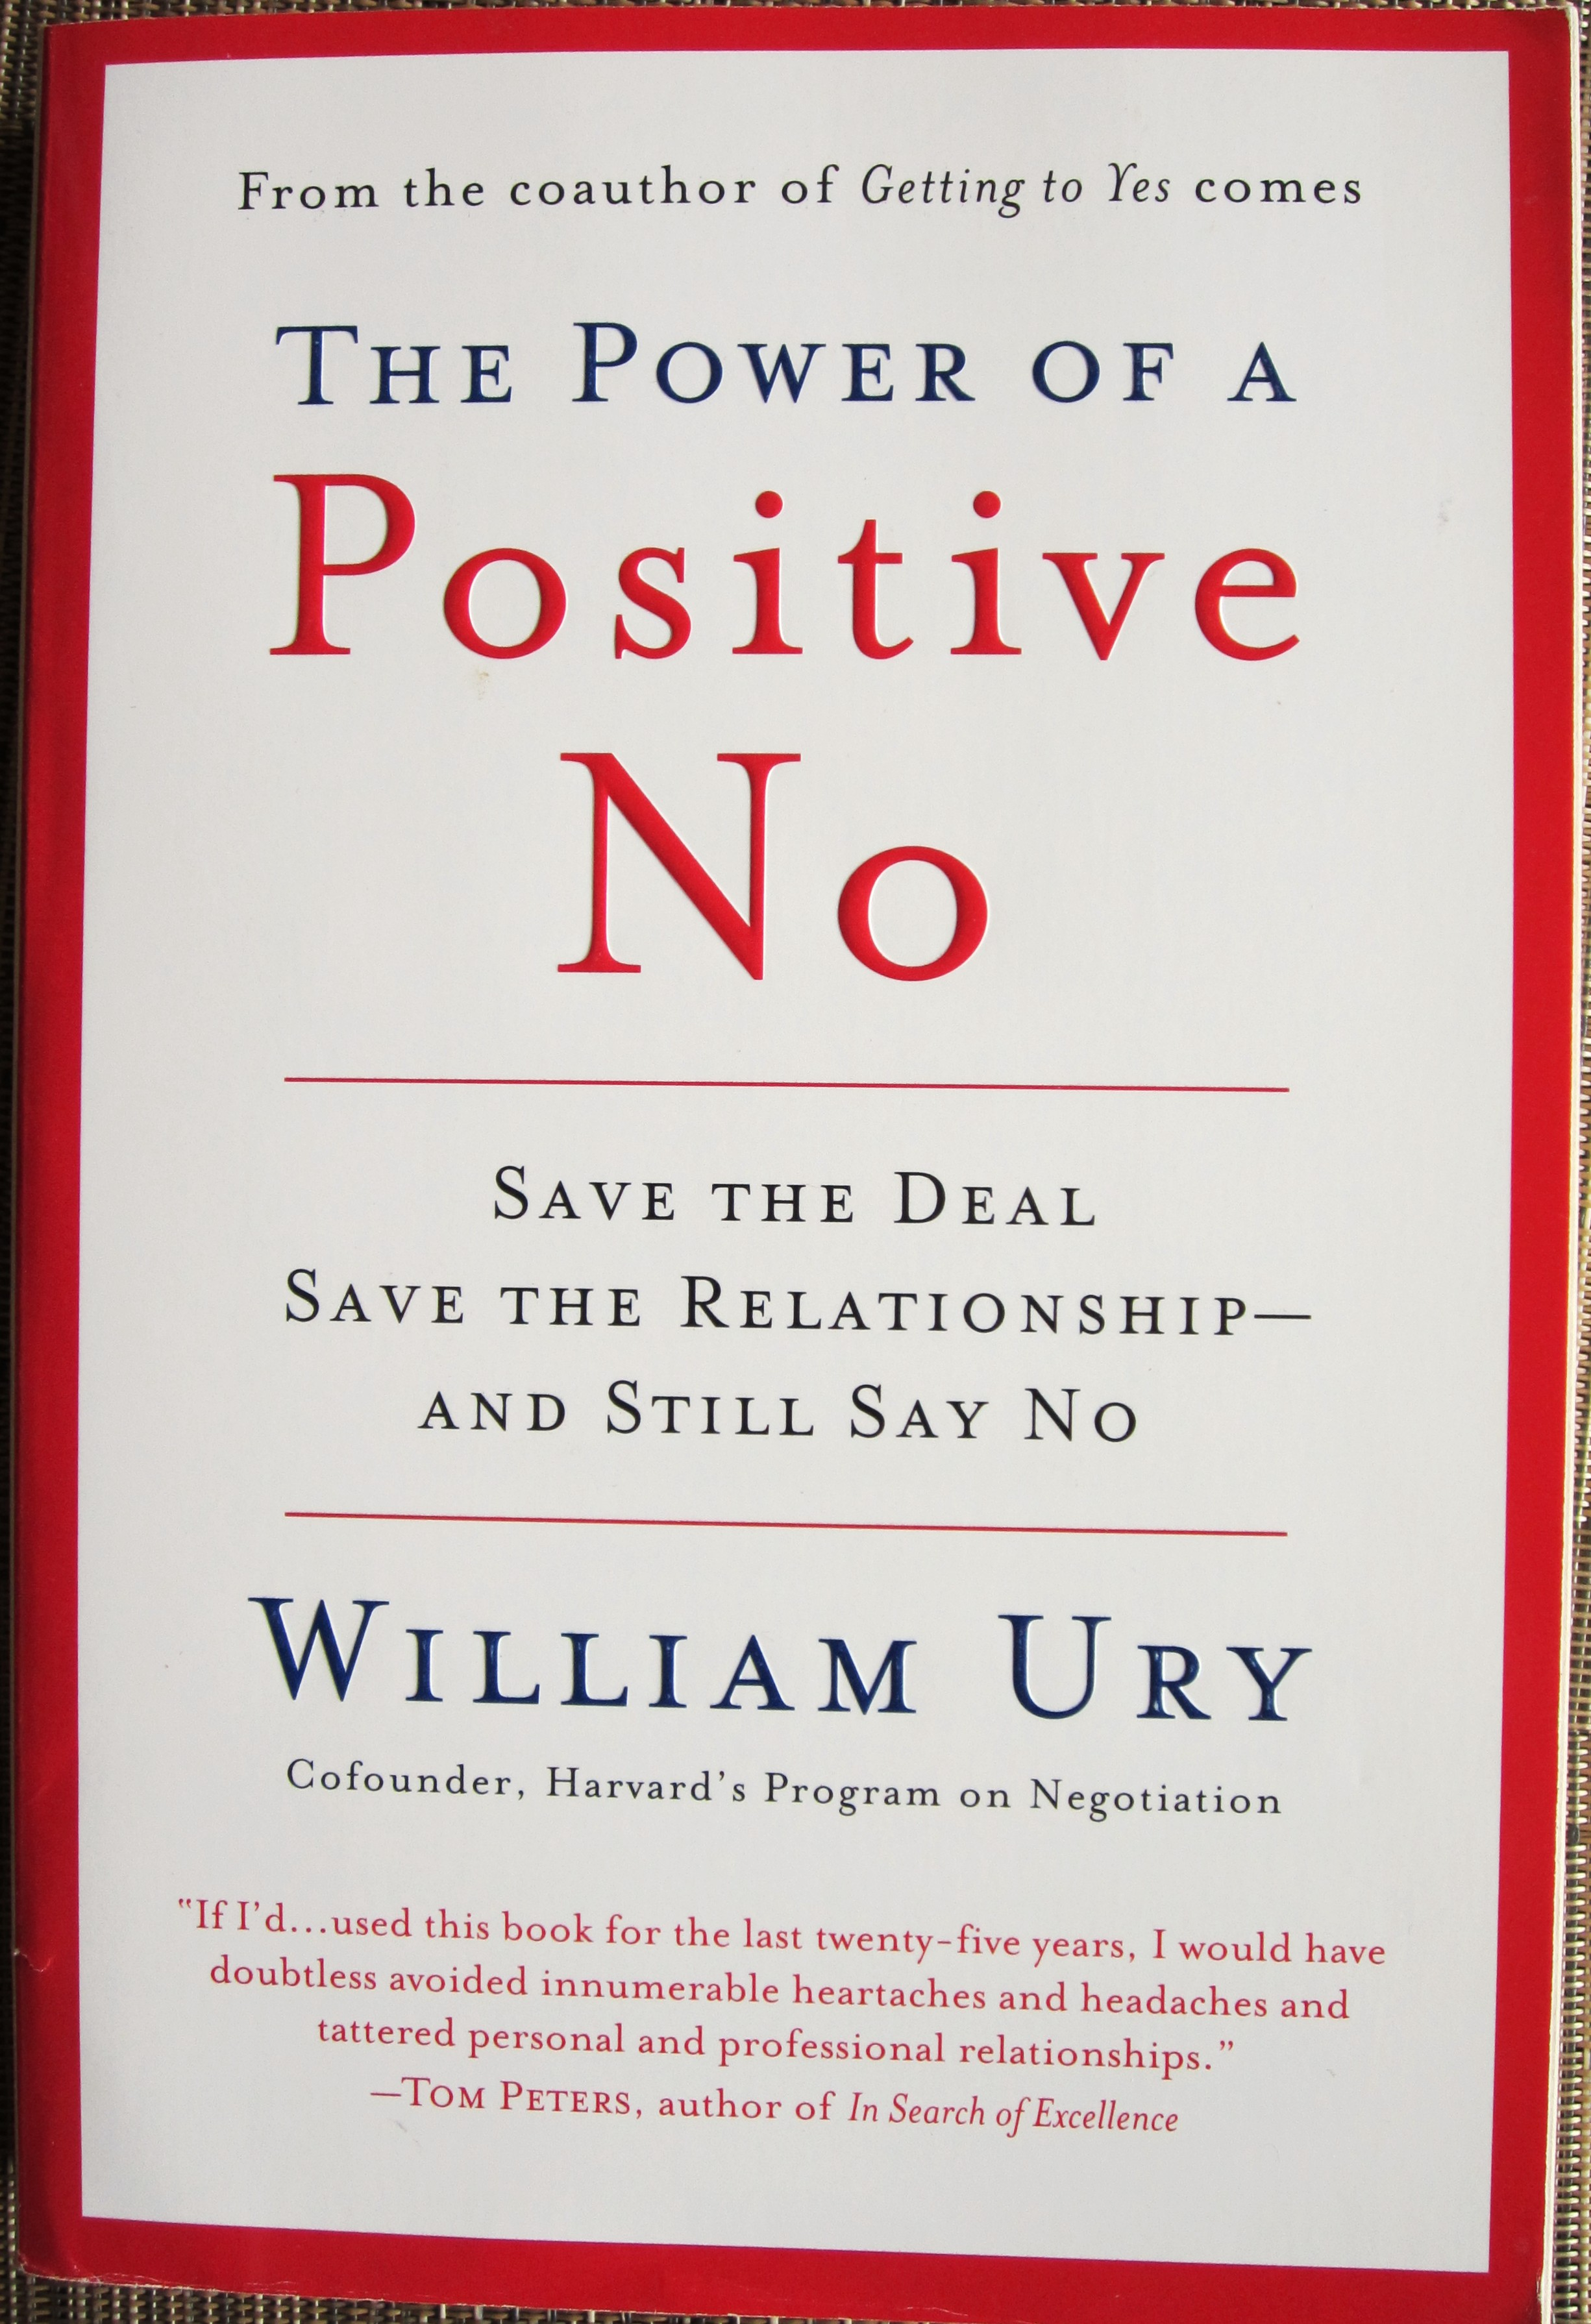 The power of positive no william ury 77